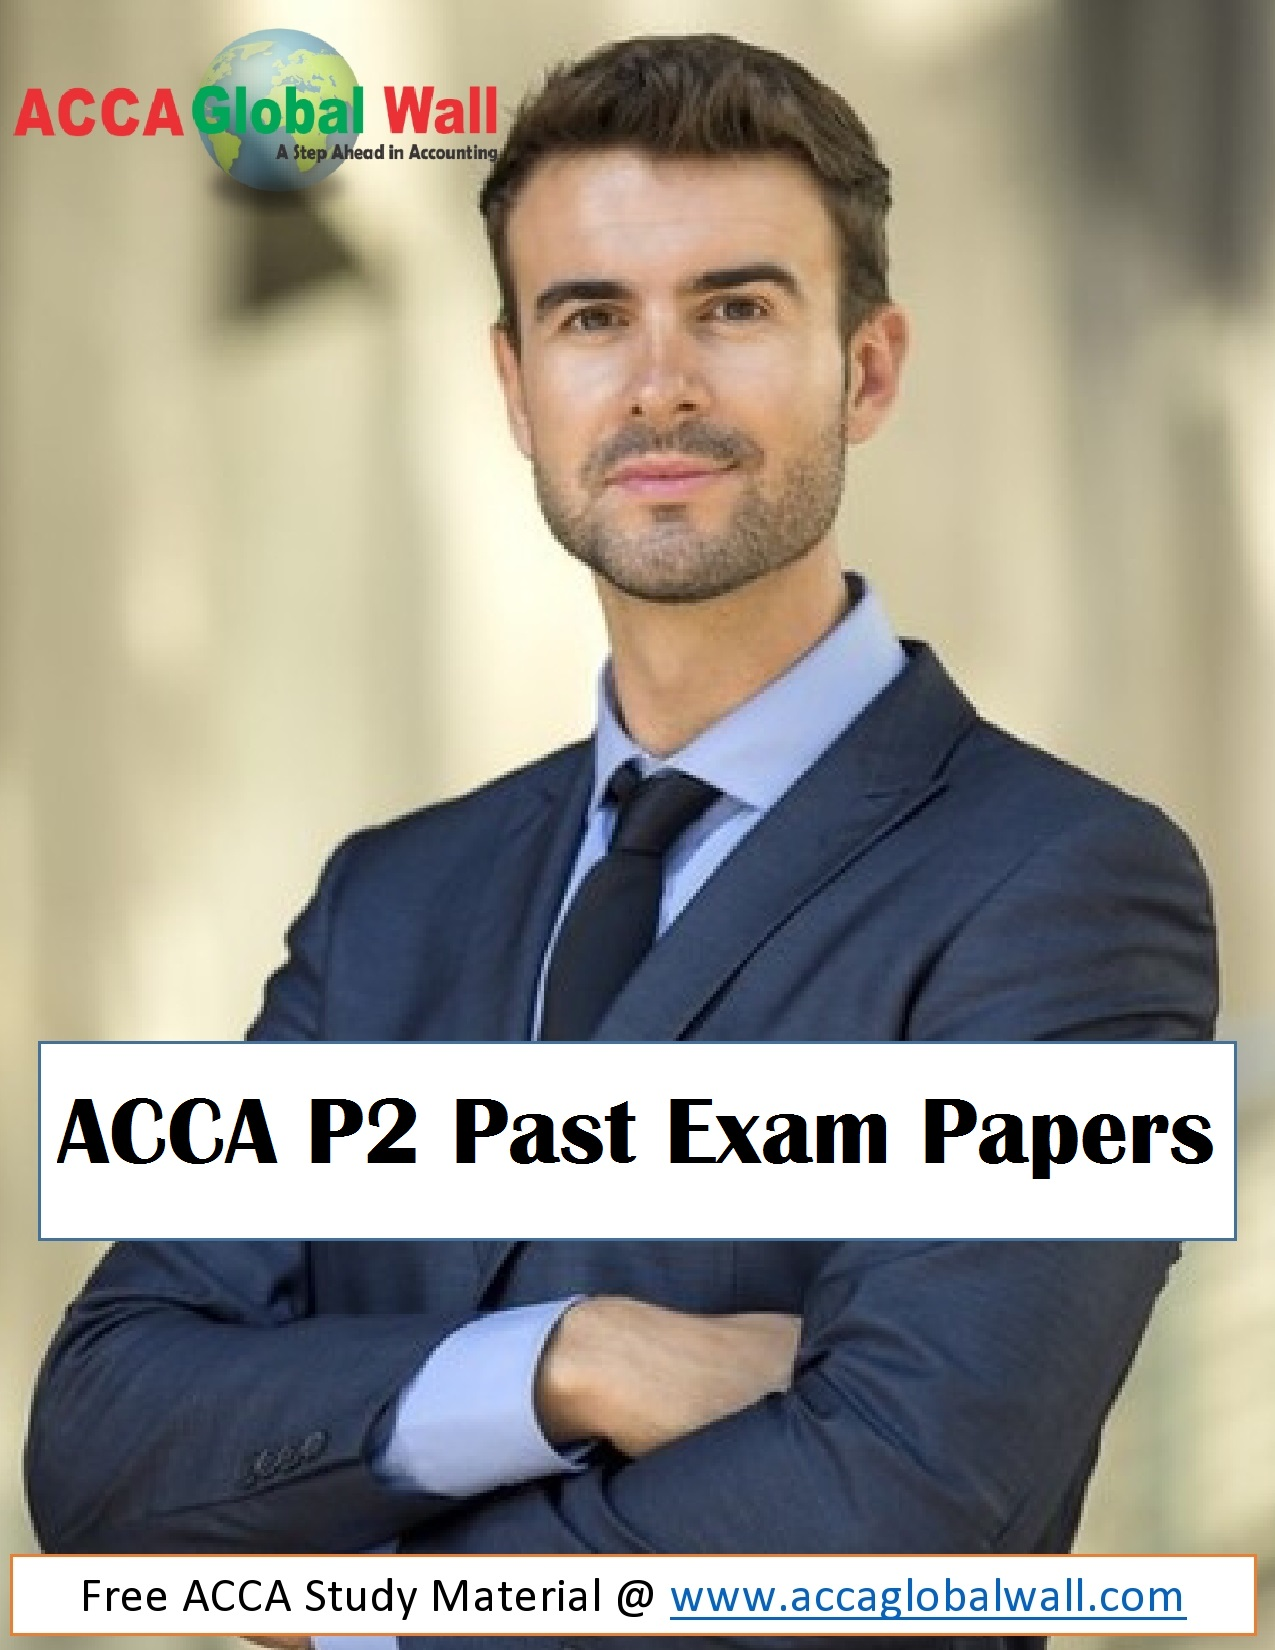 ACCA P2 Past Exam Papers in PDF